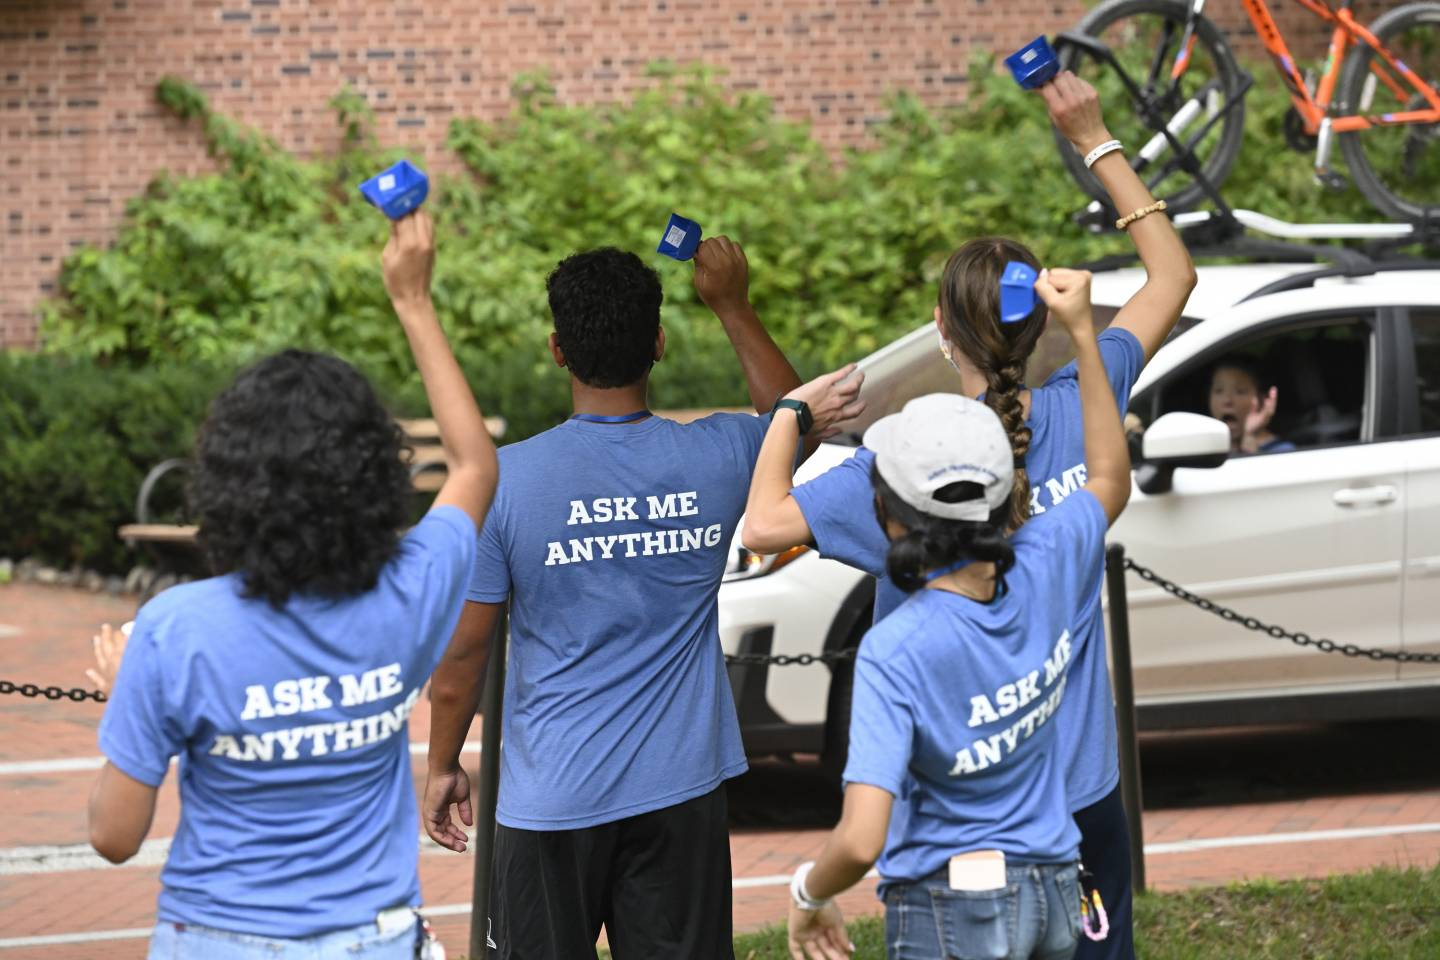 First year mentors greet new Blue Jays